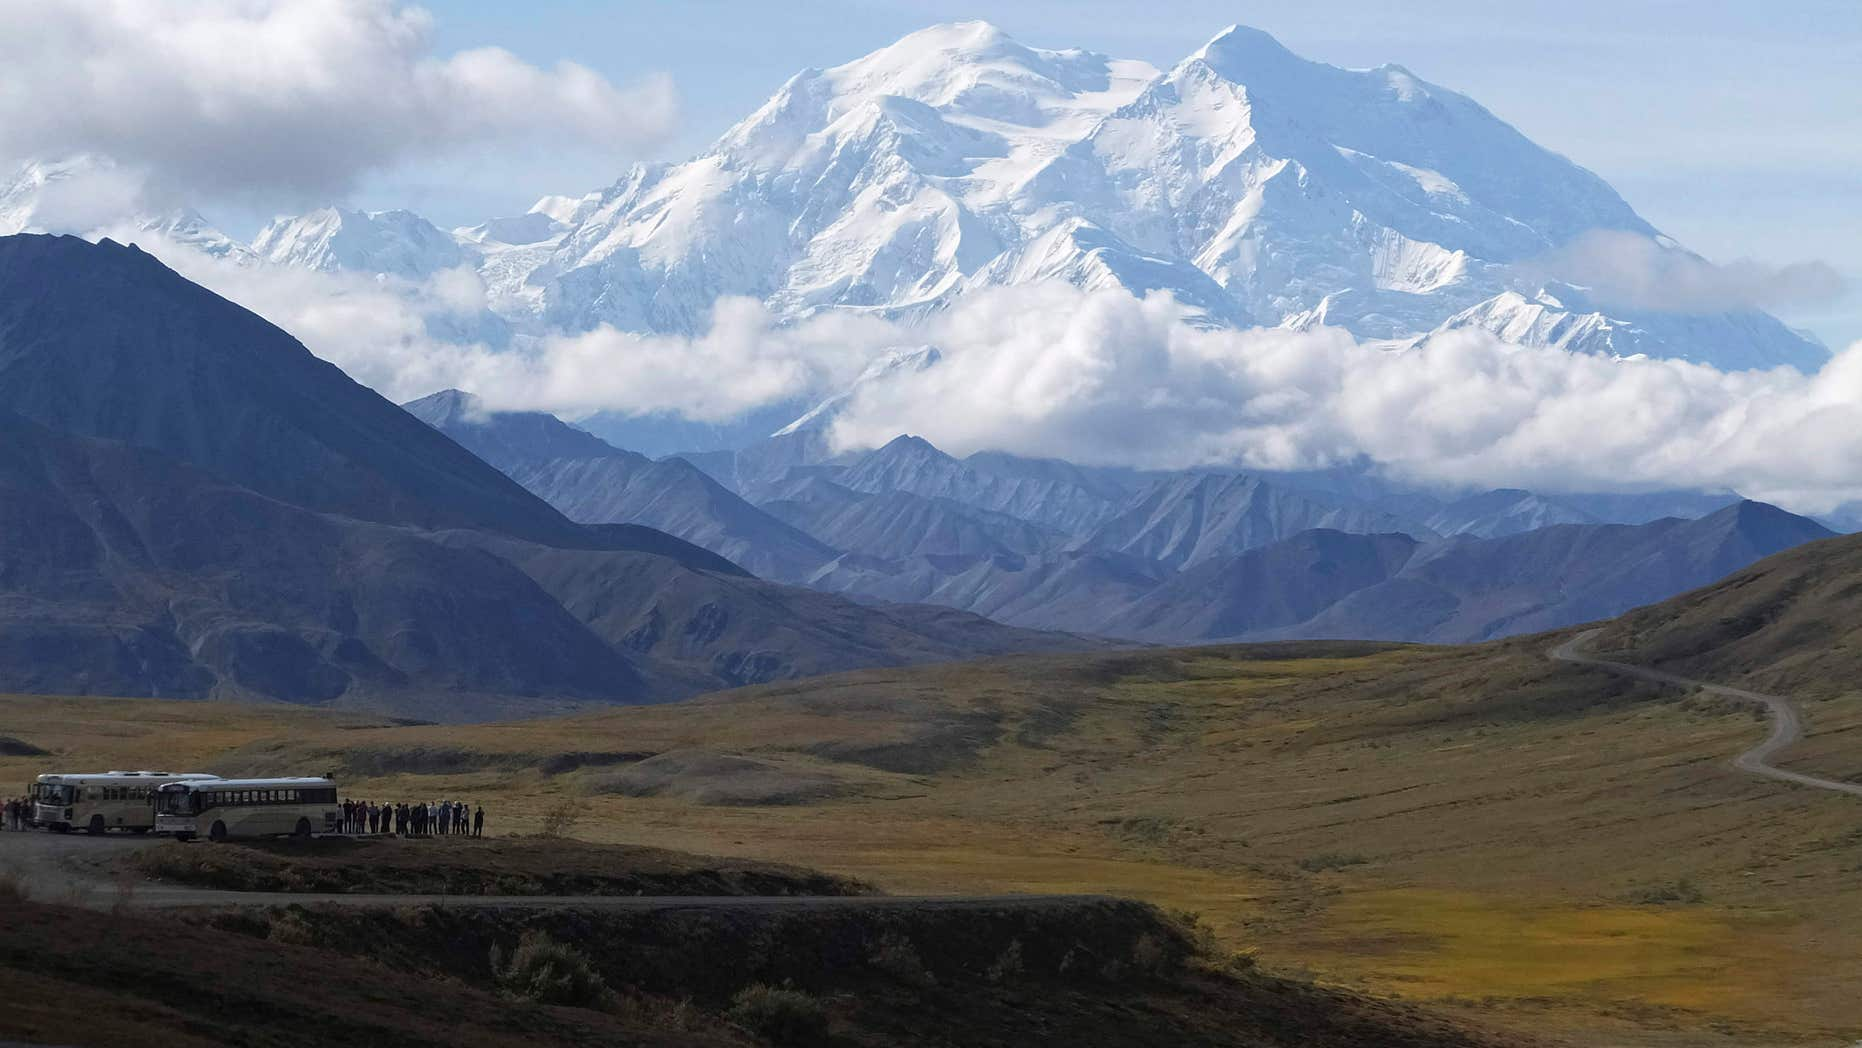 In this photo taken Aug. 26, 2016, sightseeing buses and tourists are seen at a pullout popular for taking in views of North America's tallest peak, Denali, in Denali National Park and Preserve, Alaska.